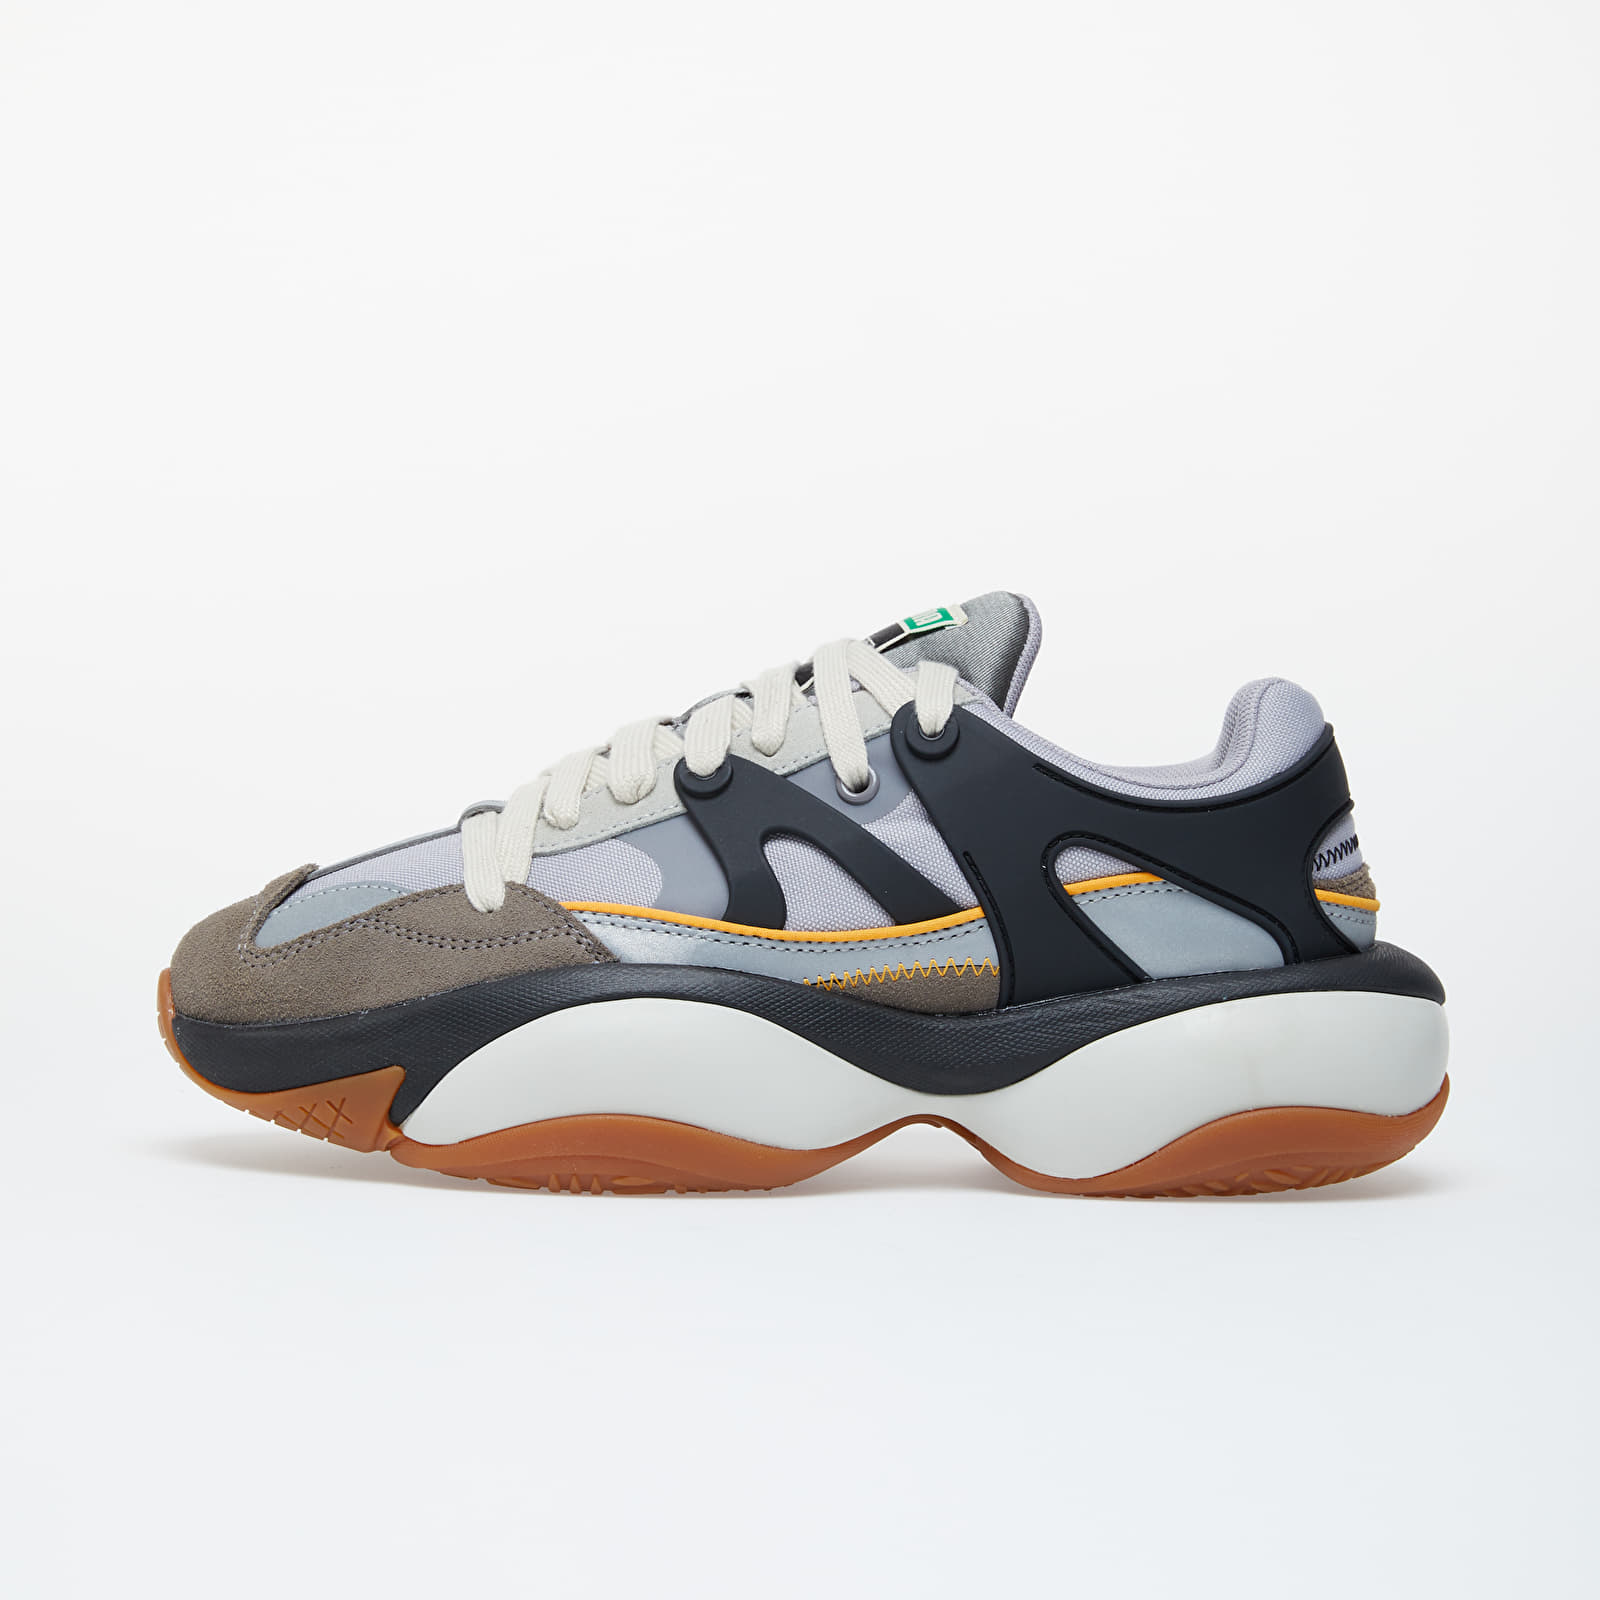 Men's shoes Puma x Rhude Alteration Nu Steel Gray-Drizzle